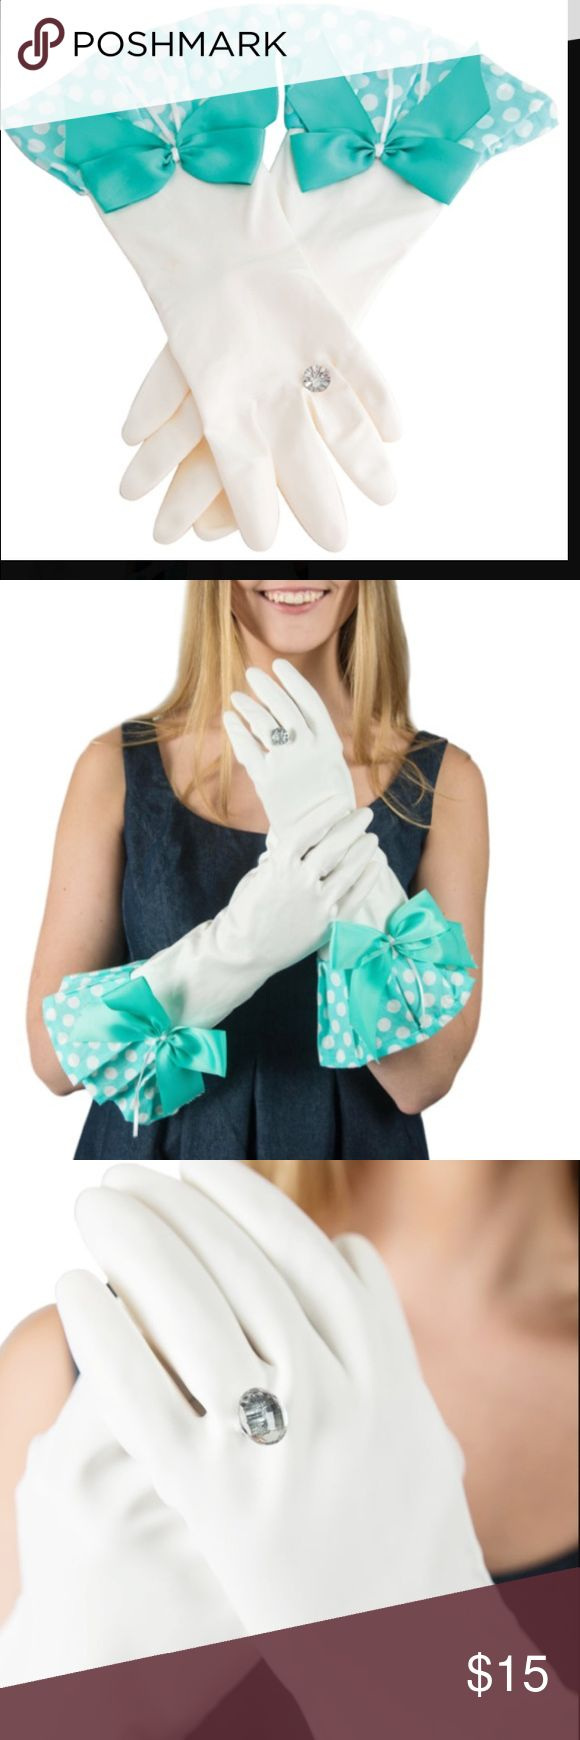 White gloves apron cleaning services - Bling Bling Glamour Dishwashing Gloves For The Bride To Be New In Wrapper